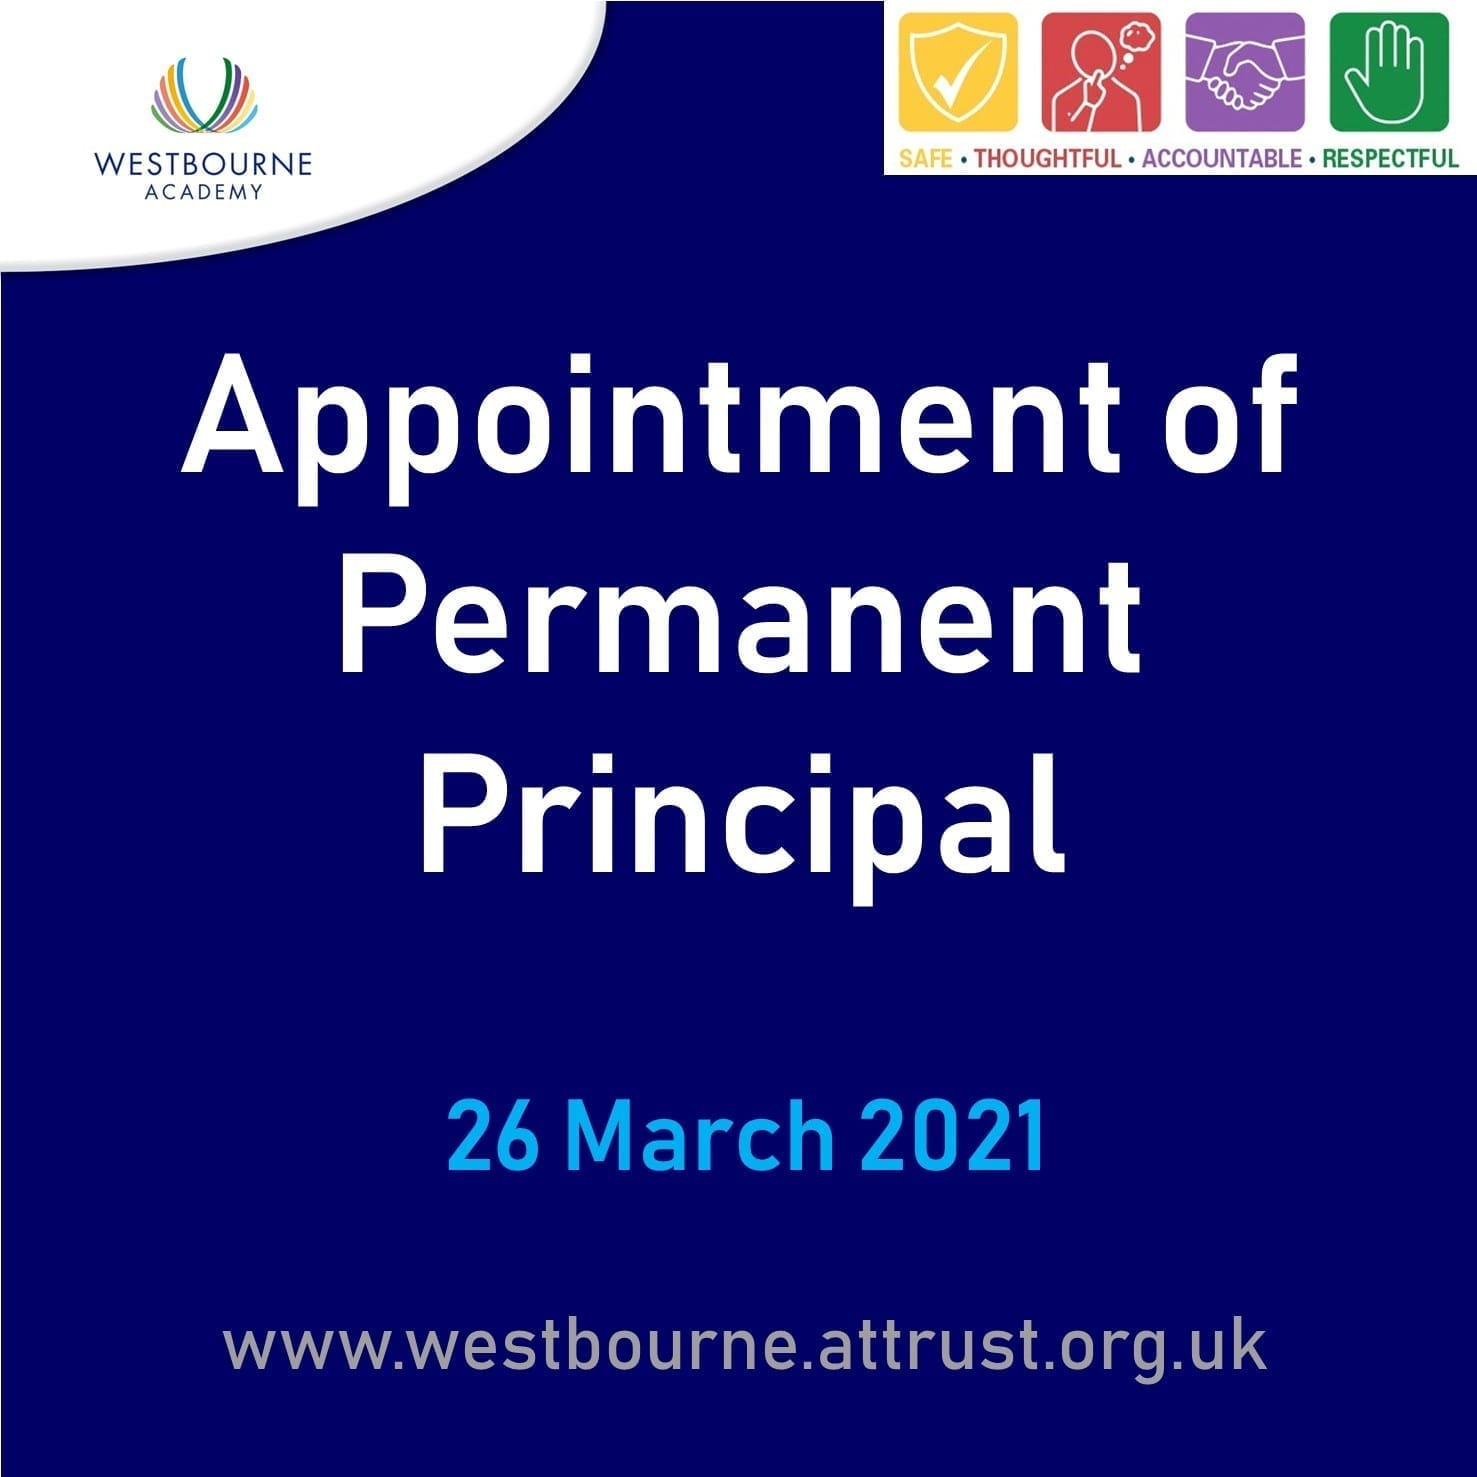 Appointment of Permanent Principal 26 March 2021